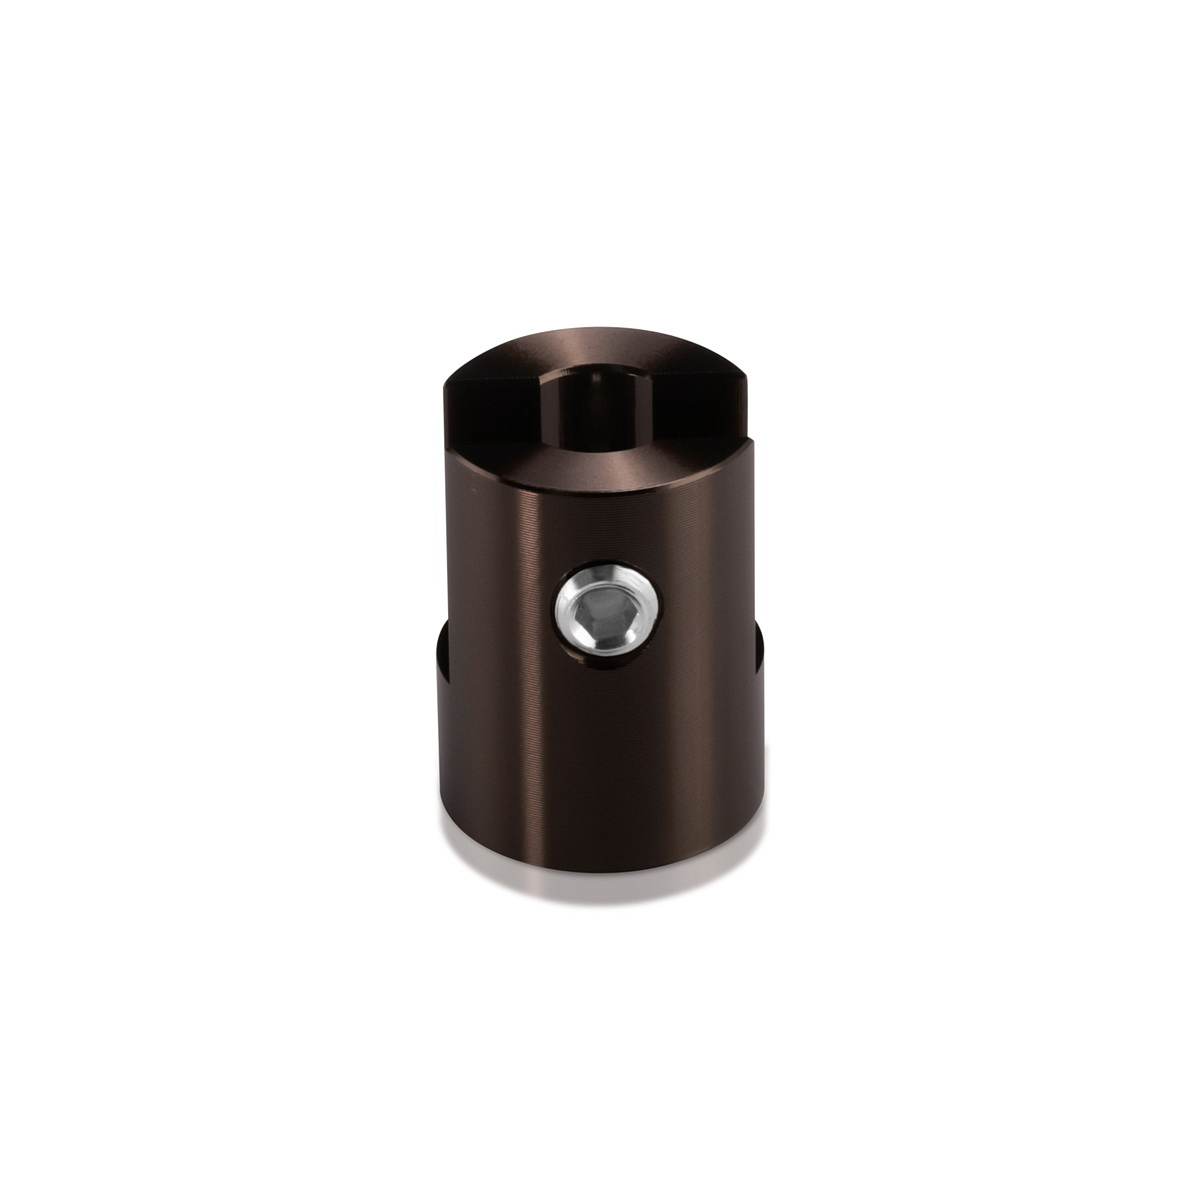 Aluminum Bronze Anodized Finish Projecting Gripper, Holds Up To 1/4'' Material